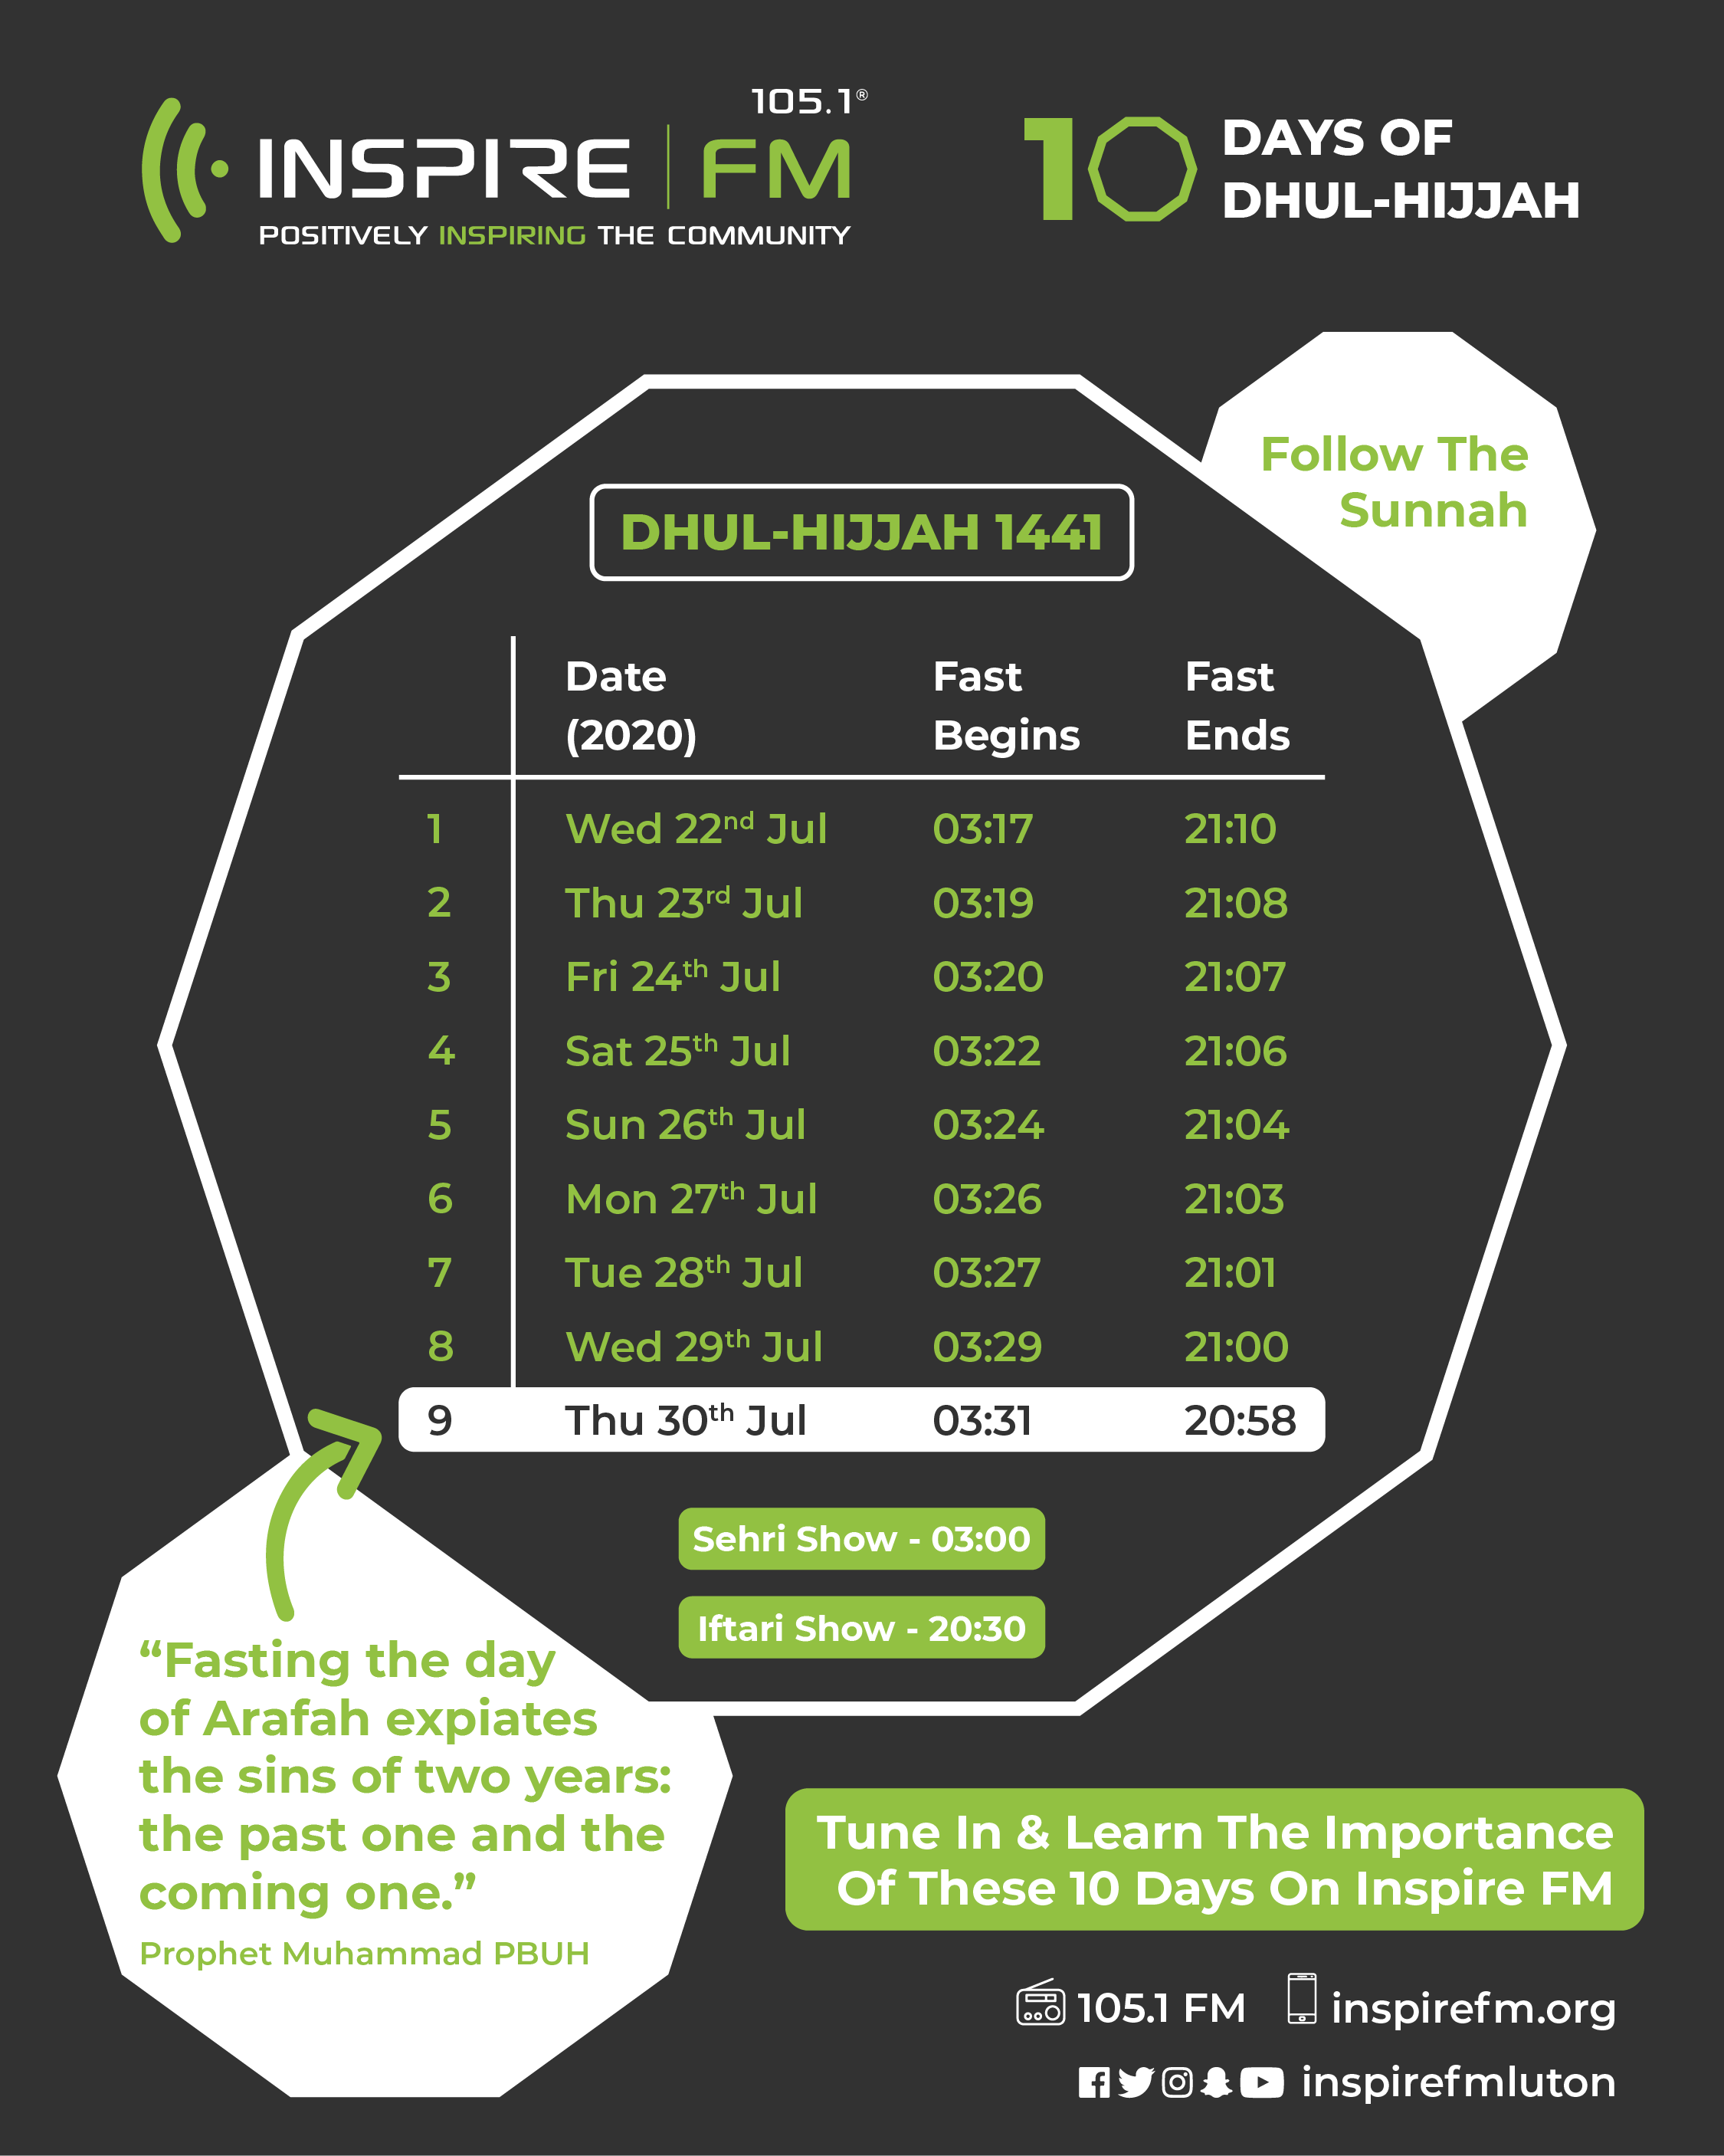 Dhul hijjah fasting times 22nd July fast begins 03:17 fast ends 21:10. 23rd July fast begins 03:19 fast ends 21:08. 24th July fast begins 03:20 fast ends 21:07. 25th July fast begins 03:22 fast ends 21:06. 26th July fast begins 03:24 fast ends 21:04z 27th July fast begins 03:26 fast ends 21:03. 28th July fast begins 03:27 fast ends 21:01. 29th July fast begins 03:29 fast ends 21:00. 30th July (day of Arafat) fast begins 03:31 fast ends 20:58.